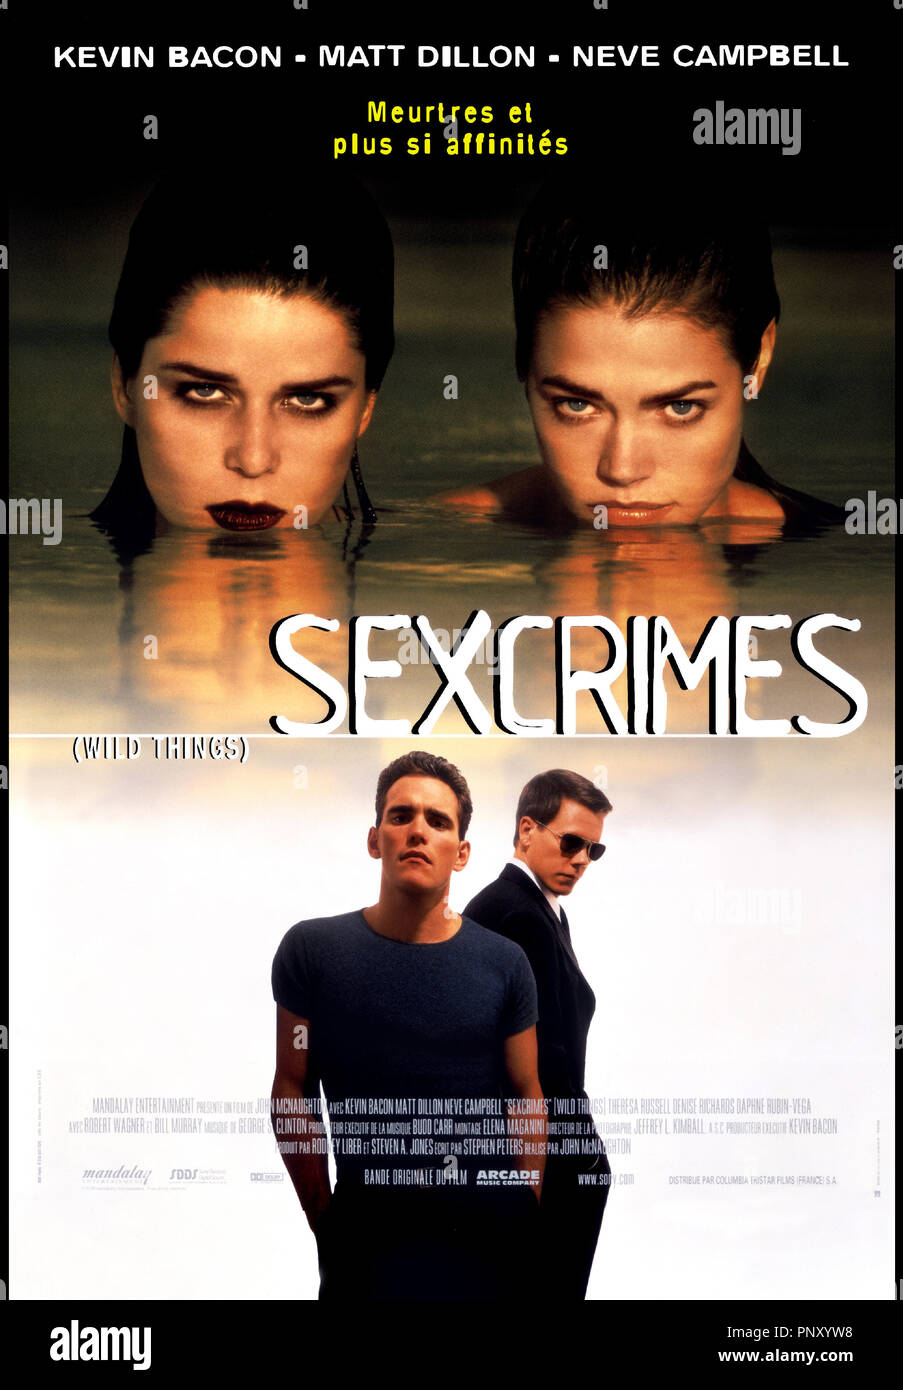 Prod DB © Mandalay / DR SEXCRIMES (WILD THINGS) de John Mc Naughton 1998 USA avec Neve Campbell, Denise Richards, Matt Dillon et Kevin Bacon affiches - Stock Image